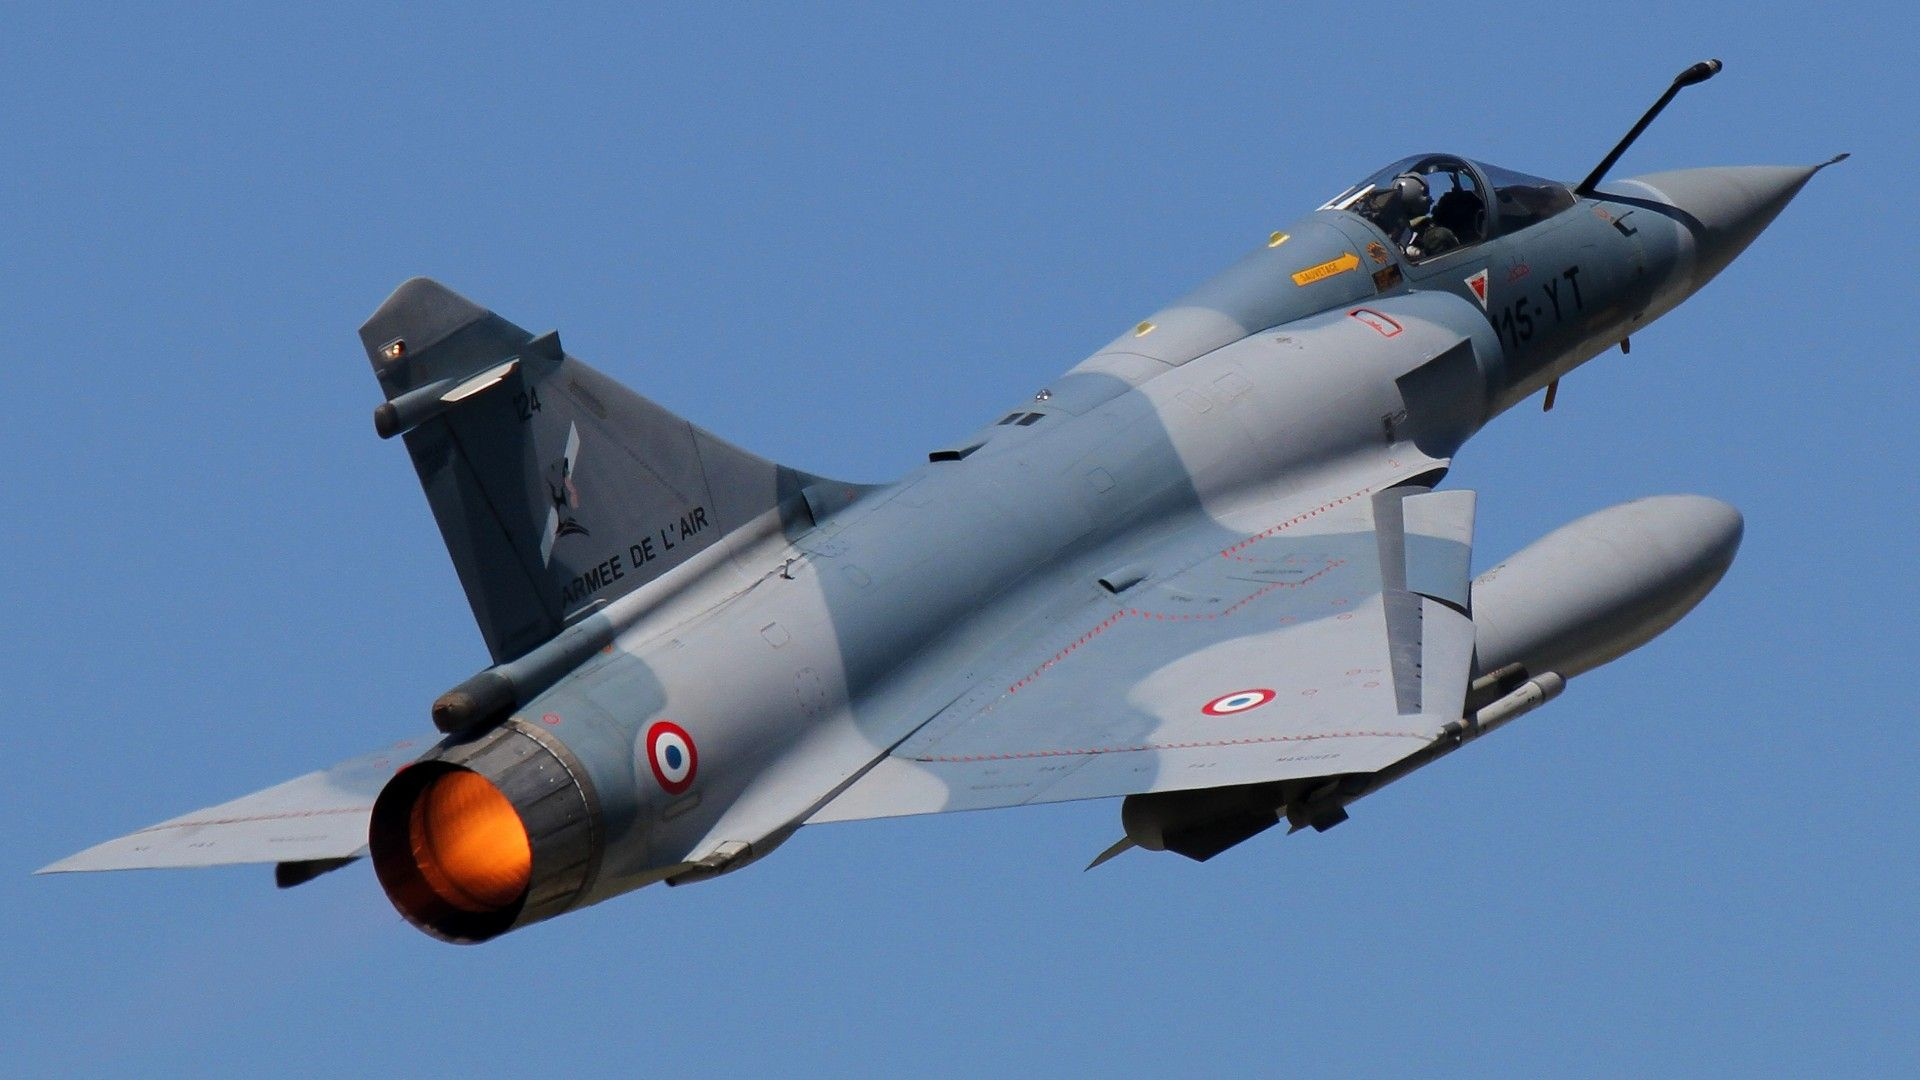 The Dassault Mirage 2000 is a French multirole, single-engine fourth